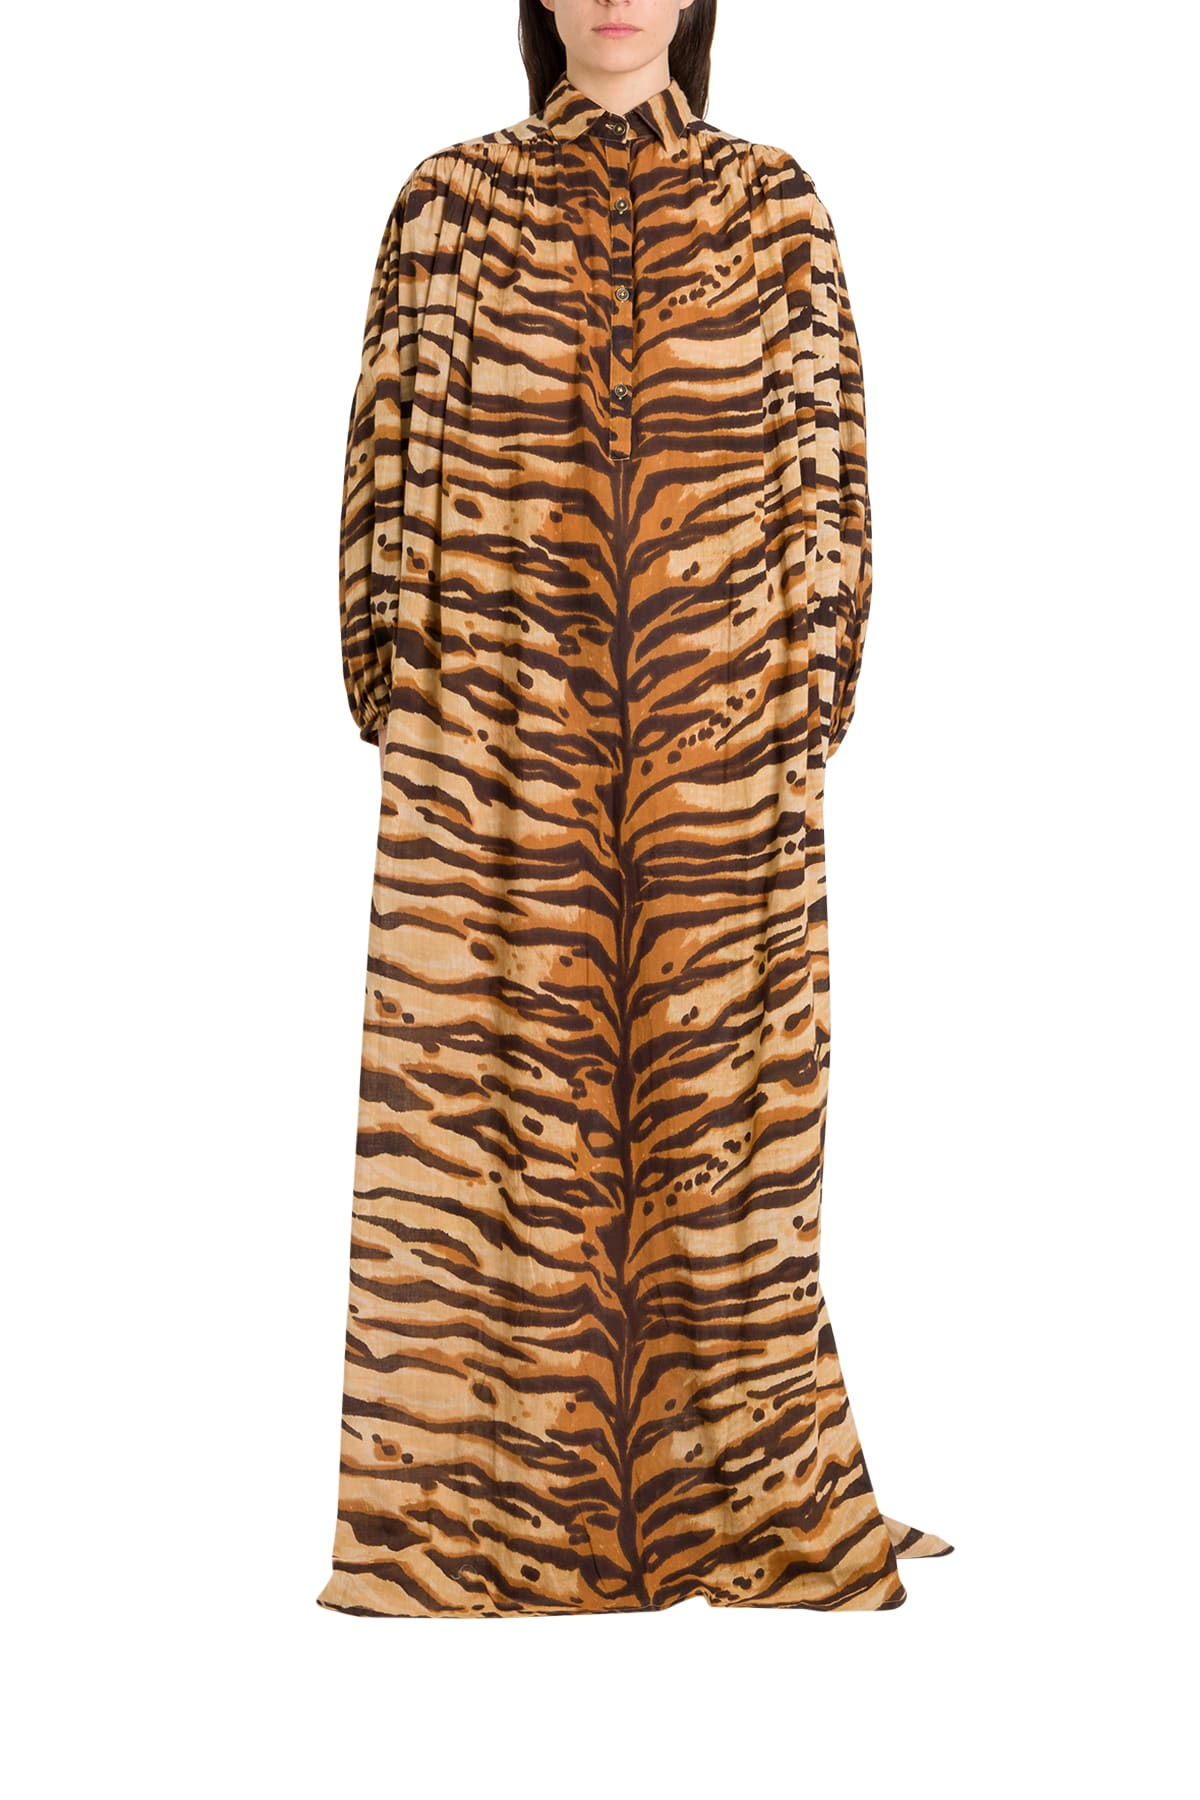 Buy Mes Demoiselles Bangla Tiger Dress online, shop Mes Demoiselles with free shipping